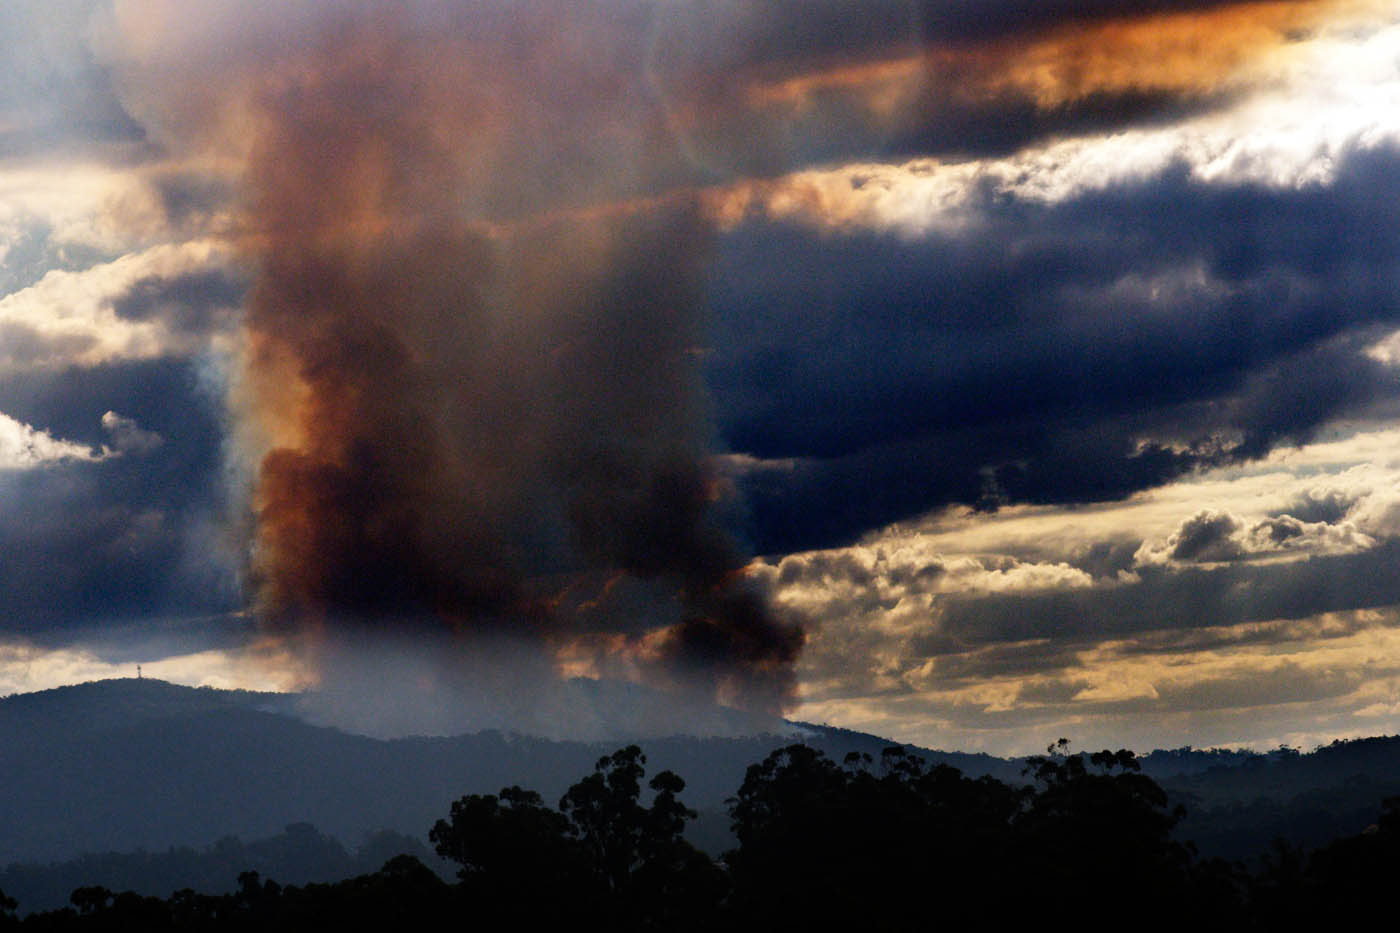 Fire in the Dandenong Ranges